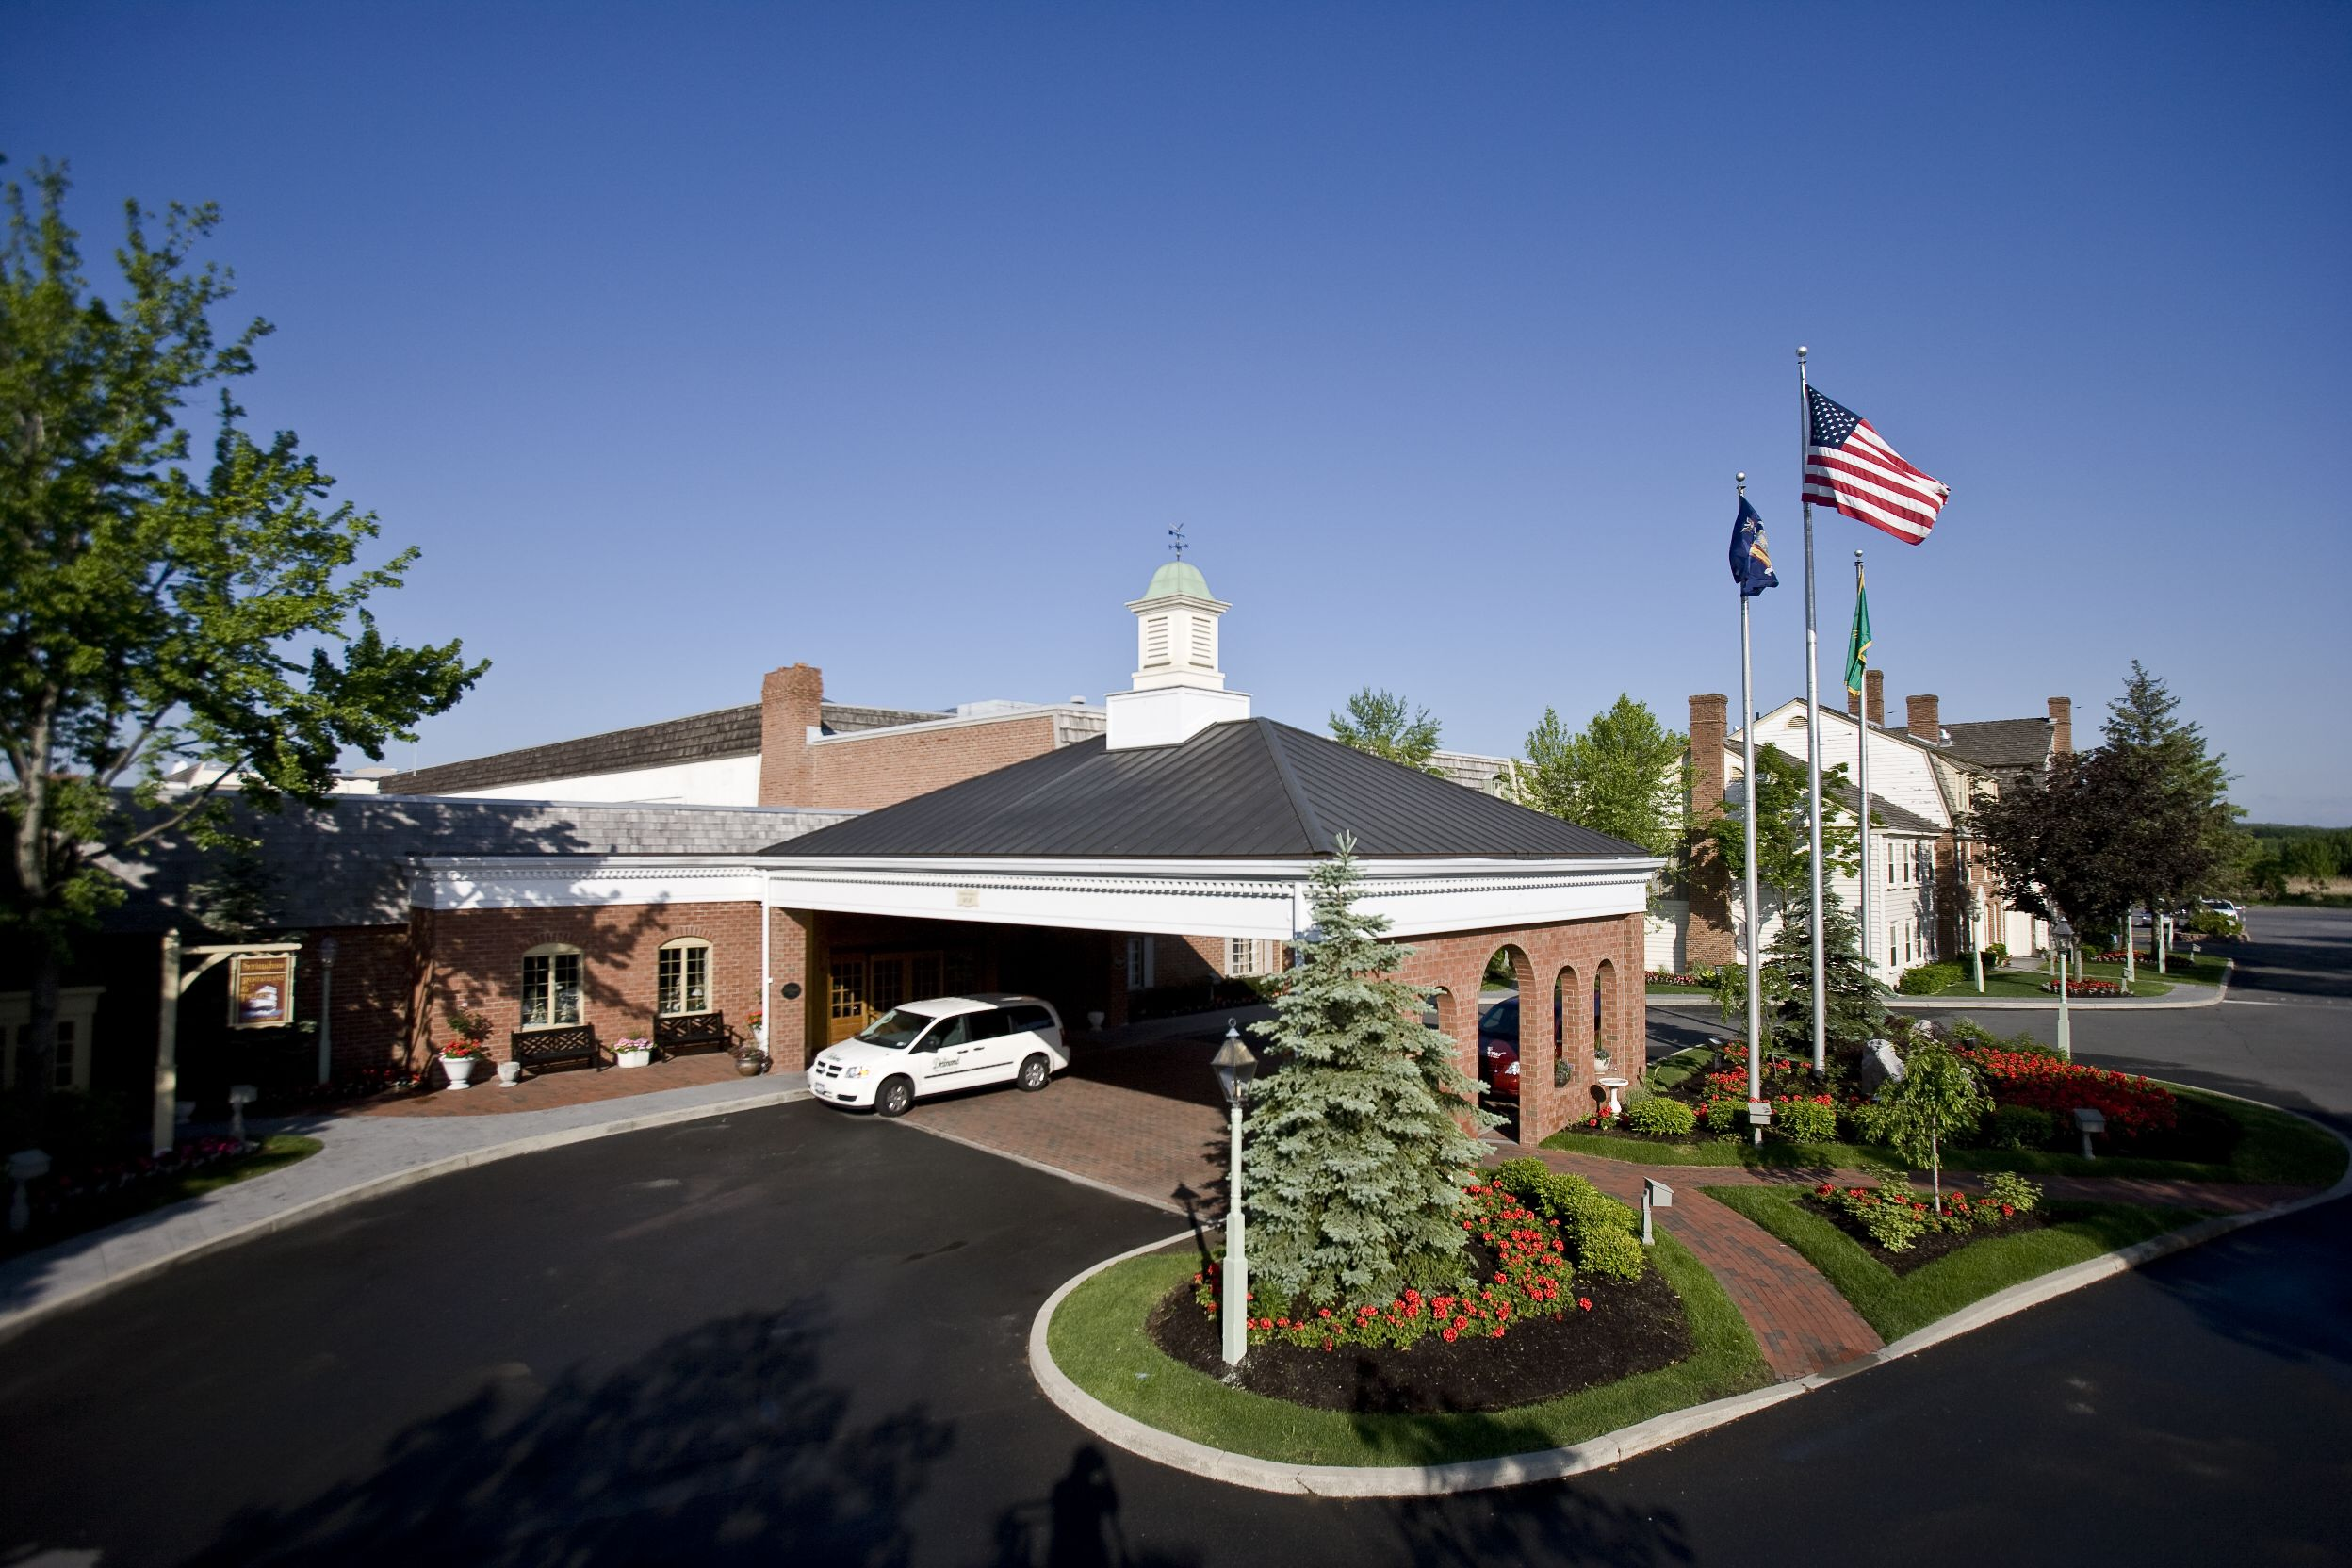 Desmond Hotel Conference Center 660 Albany Shaker Road Ny